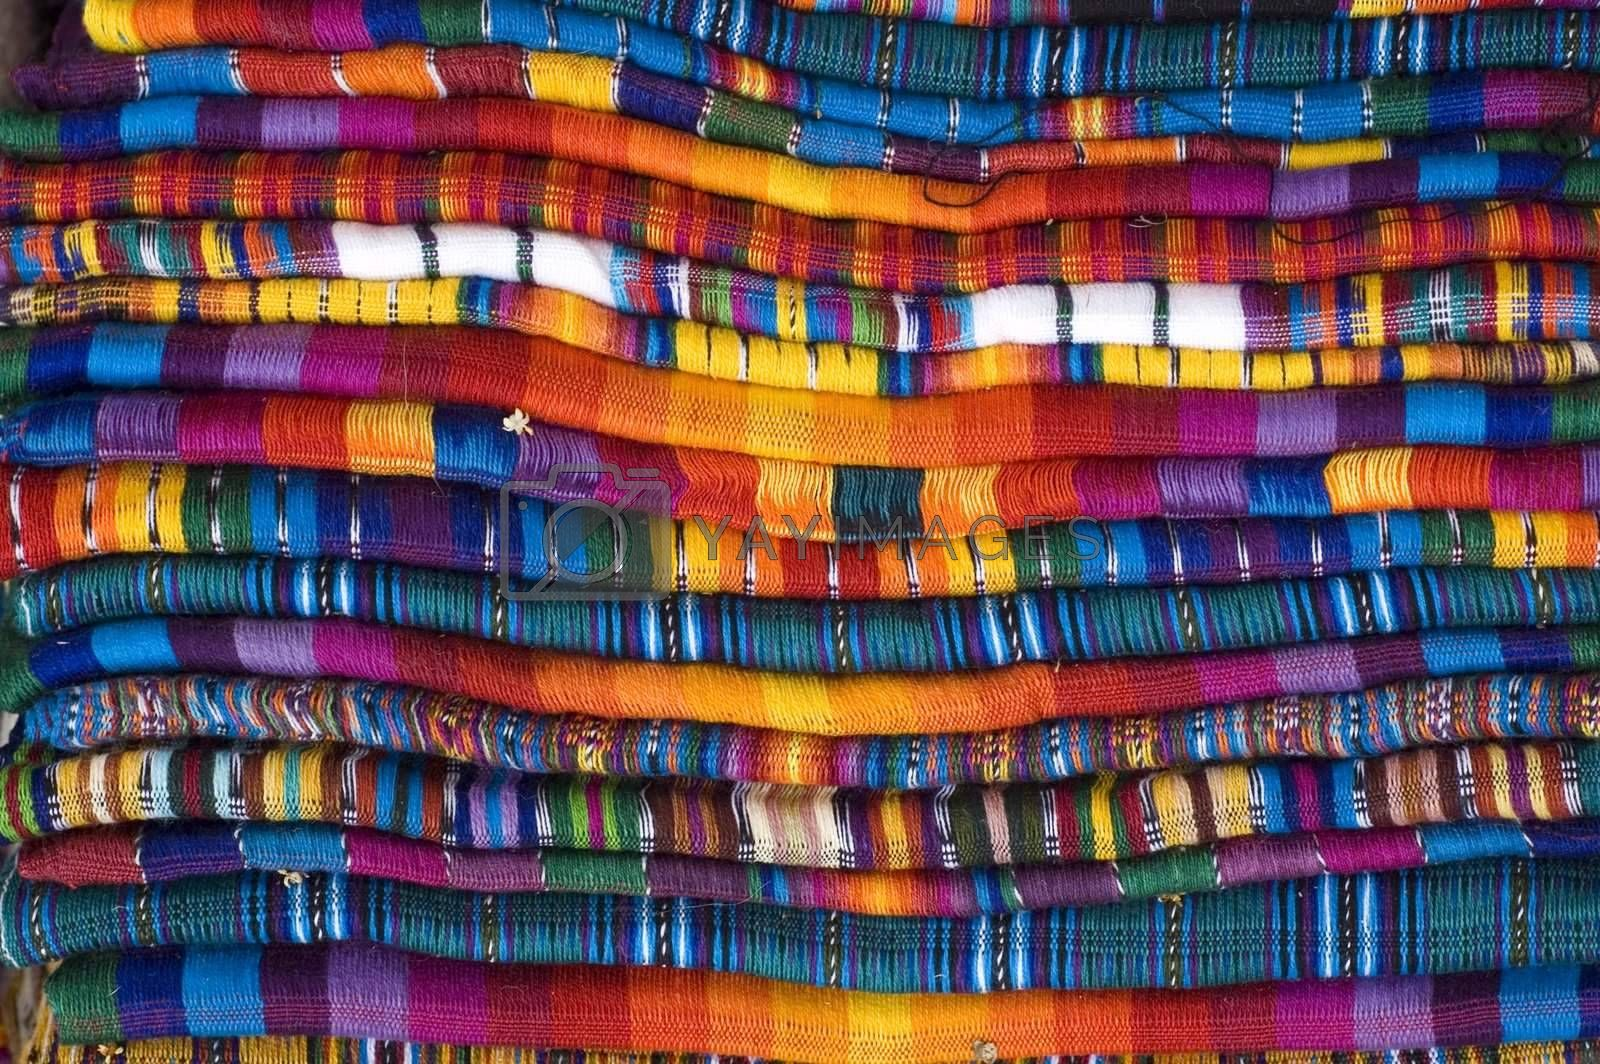 Mayan Blankets for sale stacked